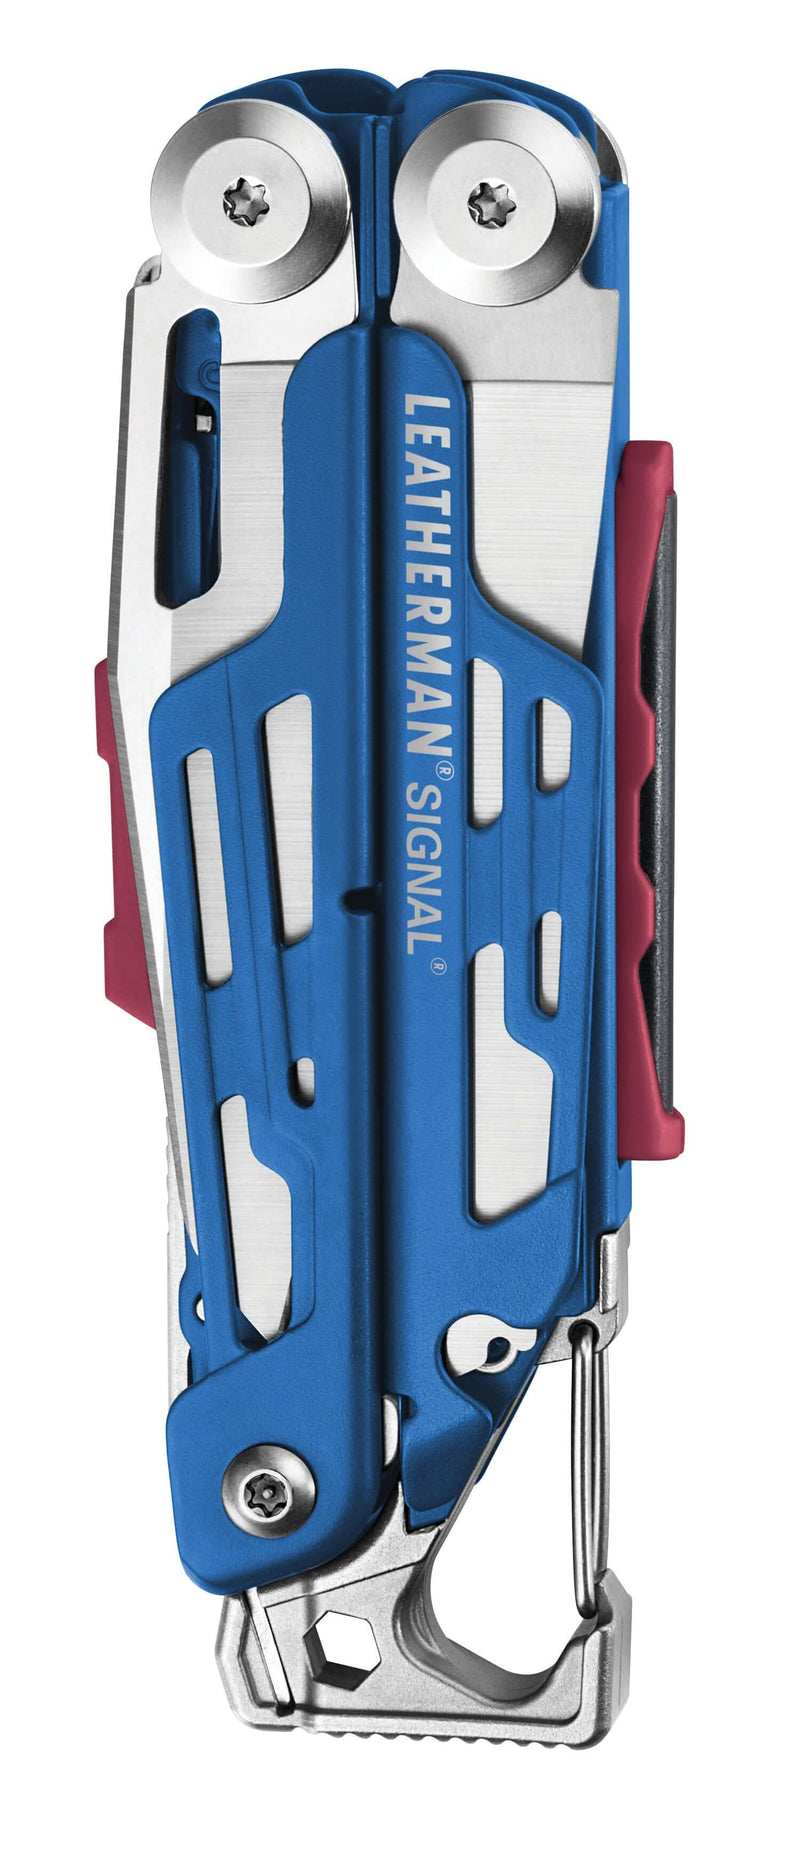 Closed Blue Cerakote Leatherman Signal®+ Multi-Tool